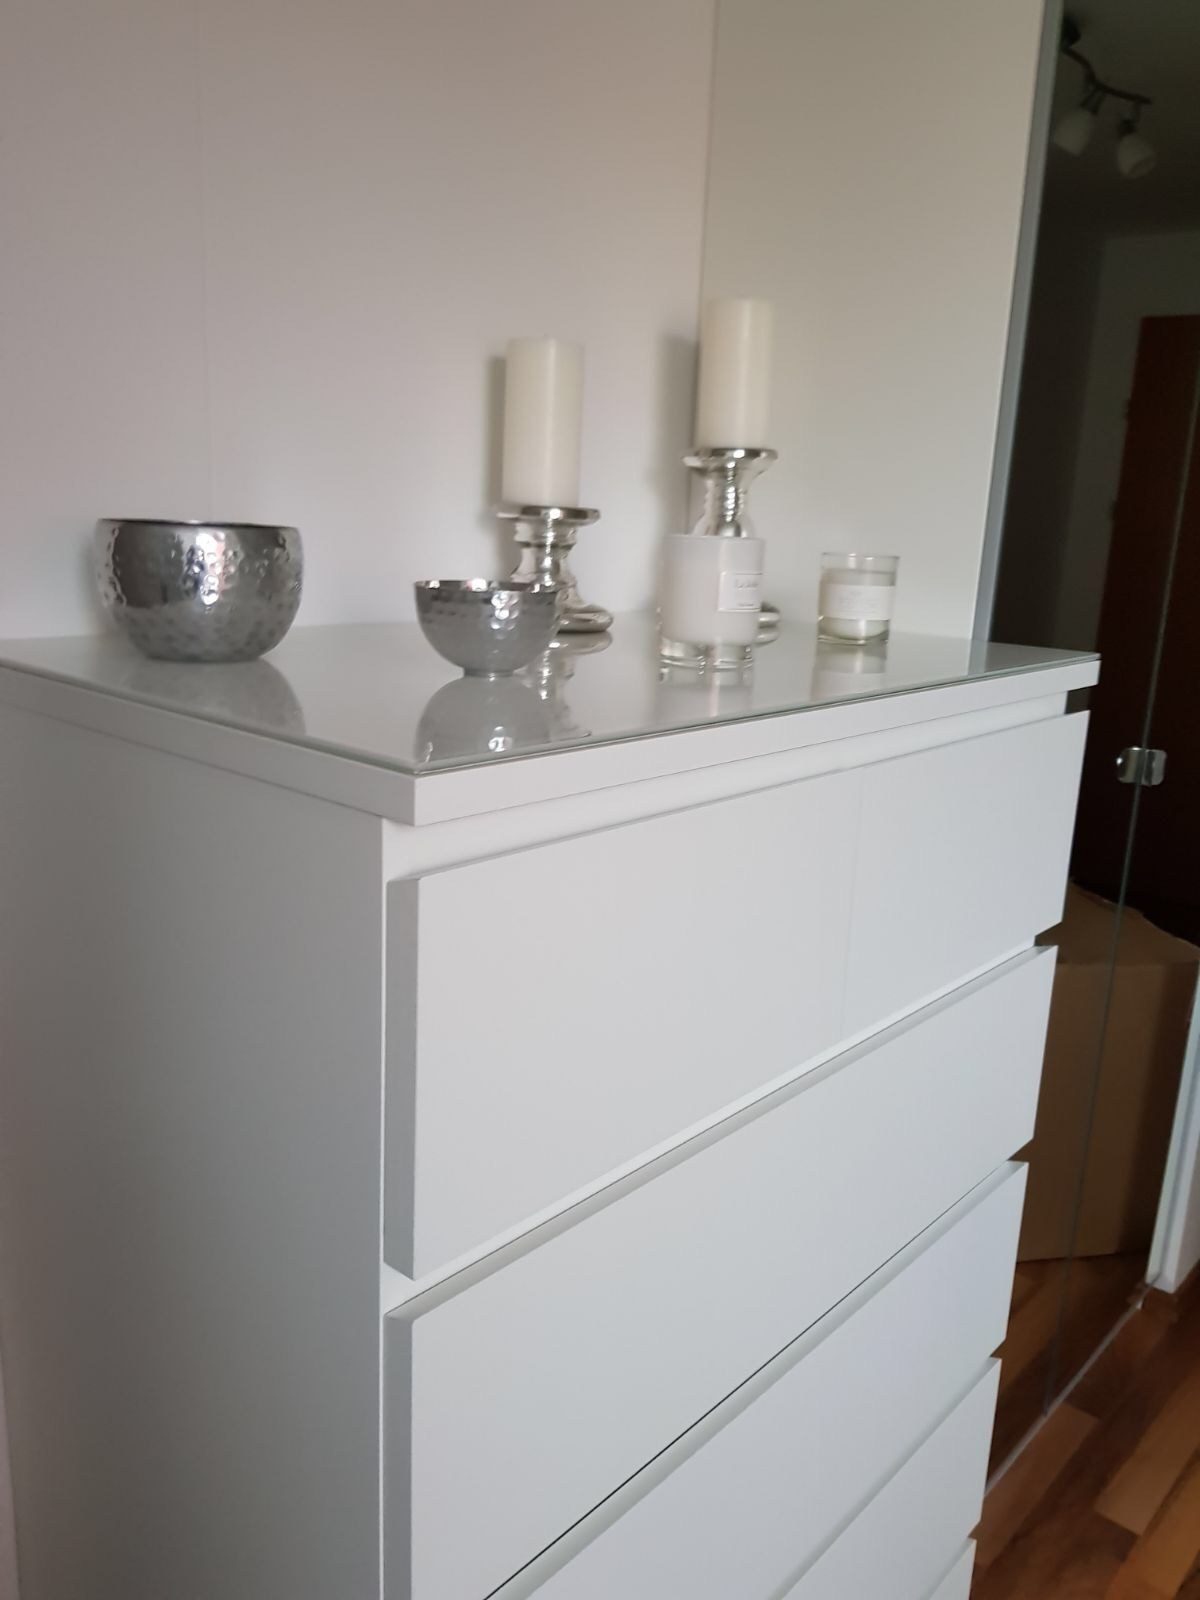 Kommode weiß ikea  Kommode weiß Ikea malm #ikea #malm #white #silver #bedroom #decor ...